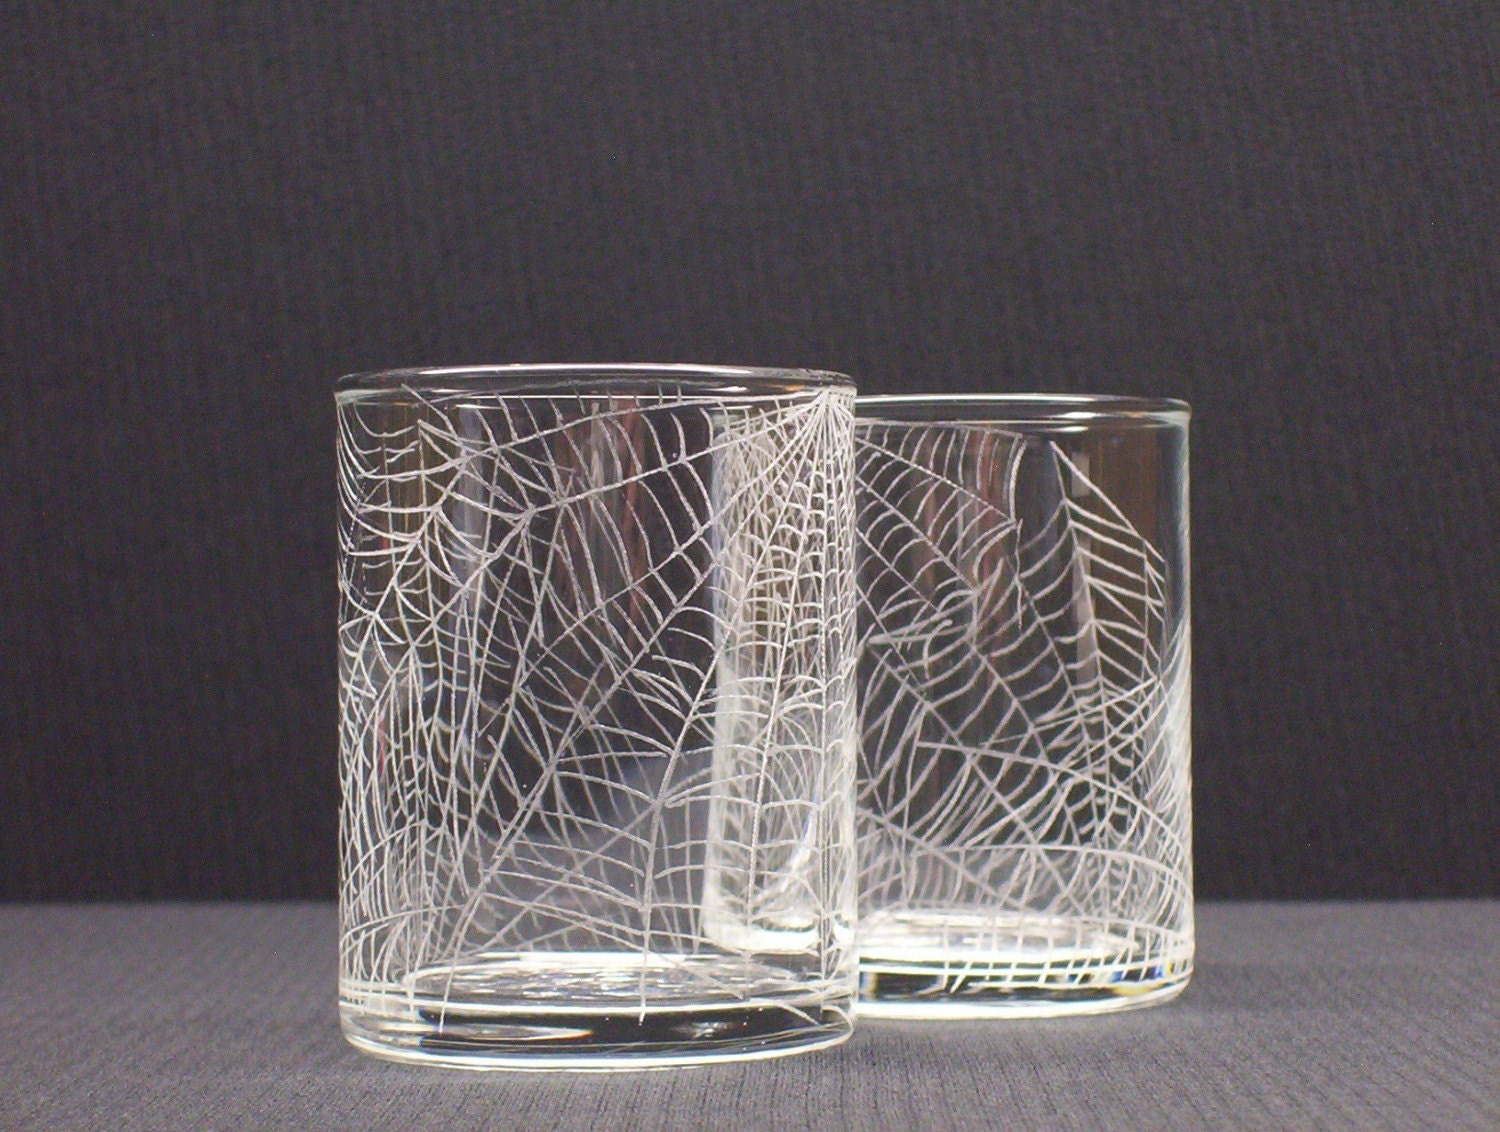 webs 2 hand engraved glass candle holders featured on